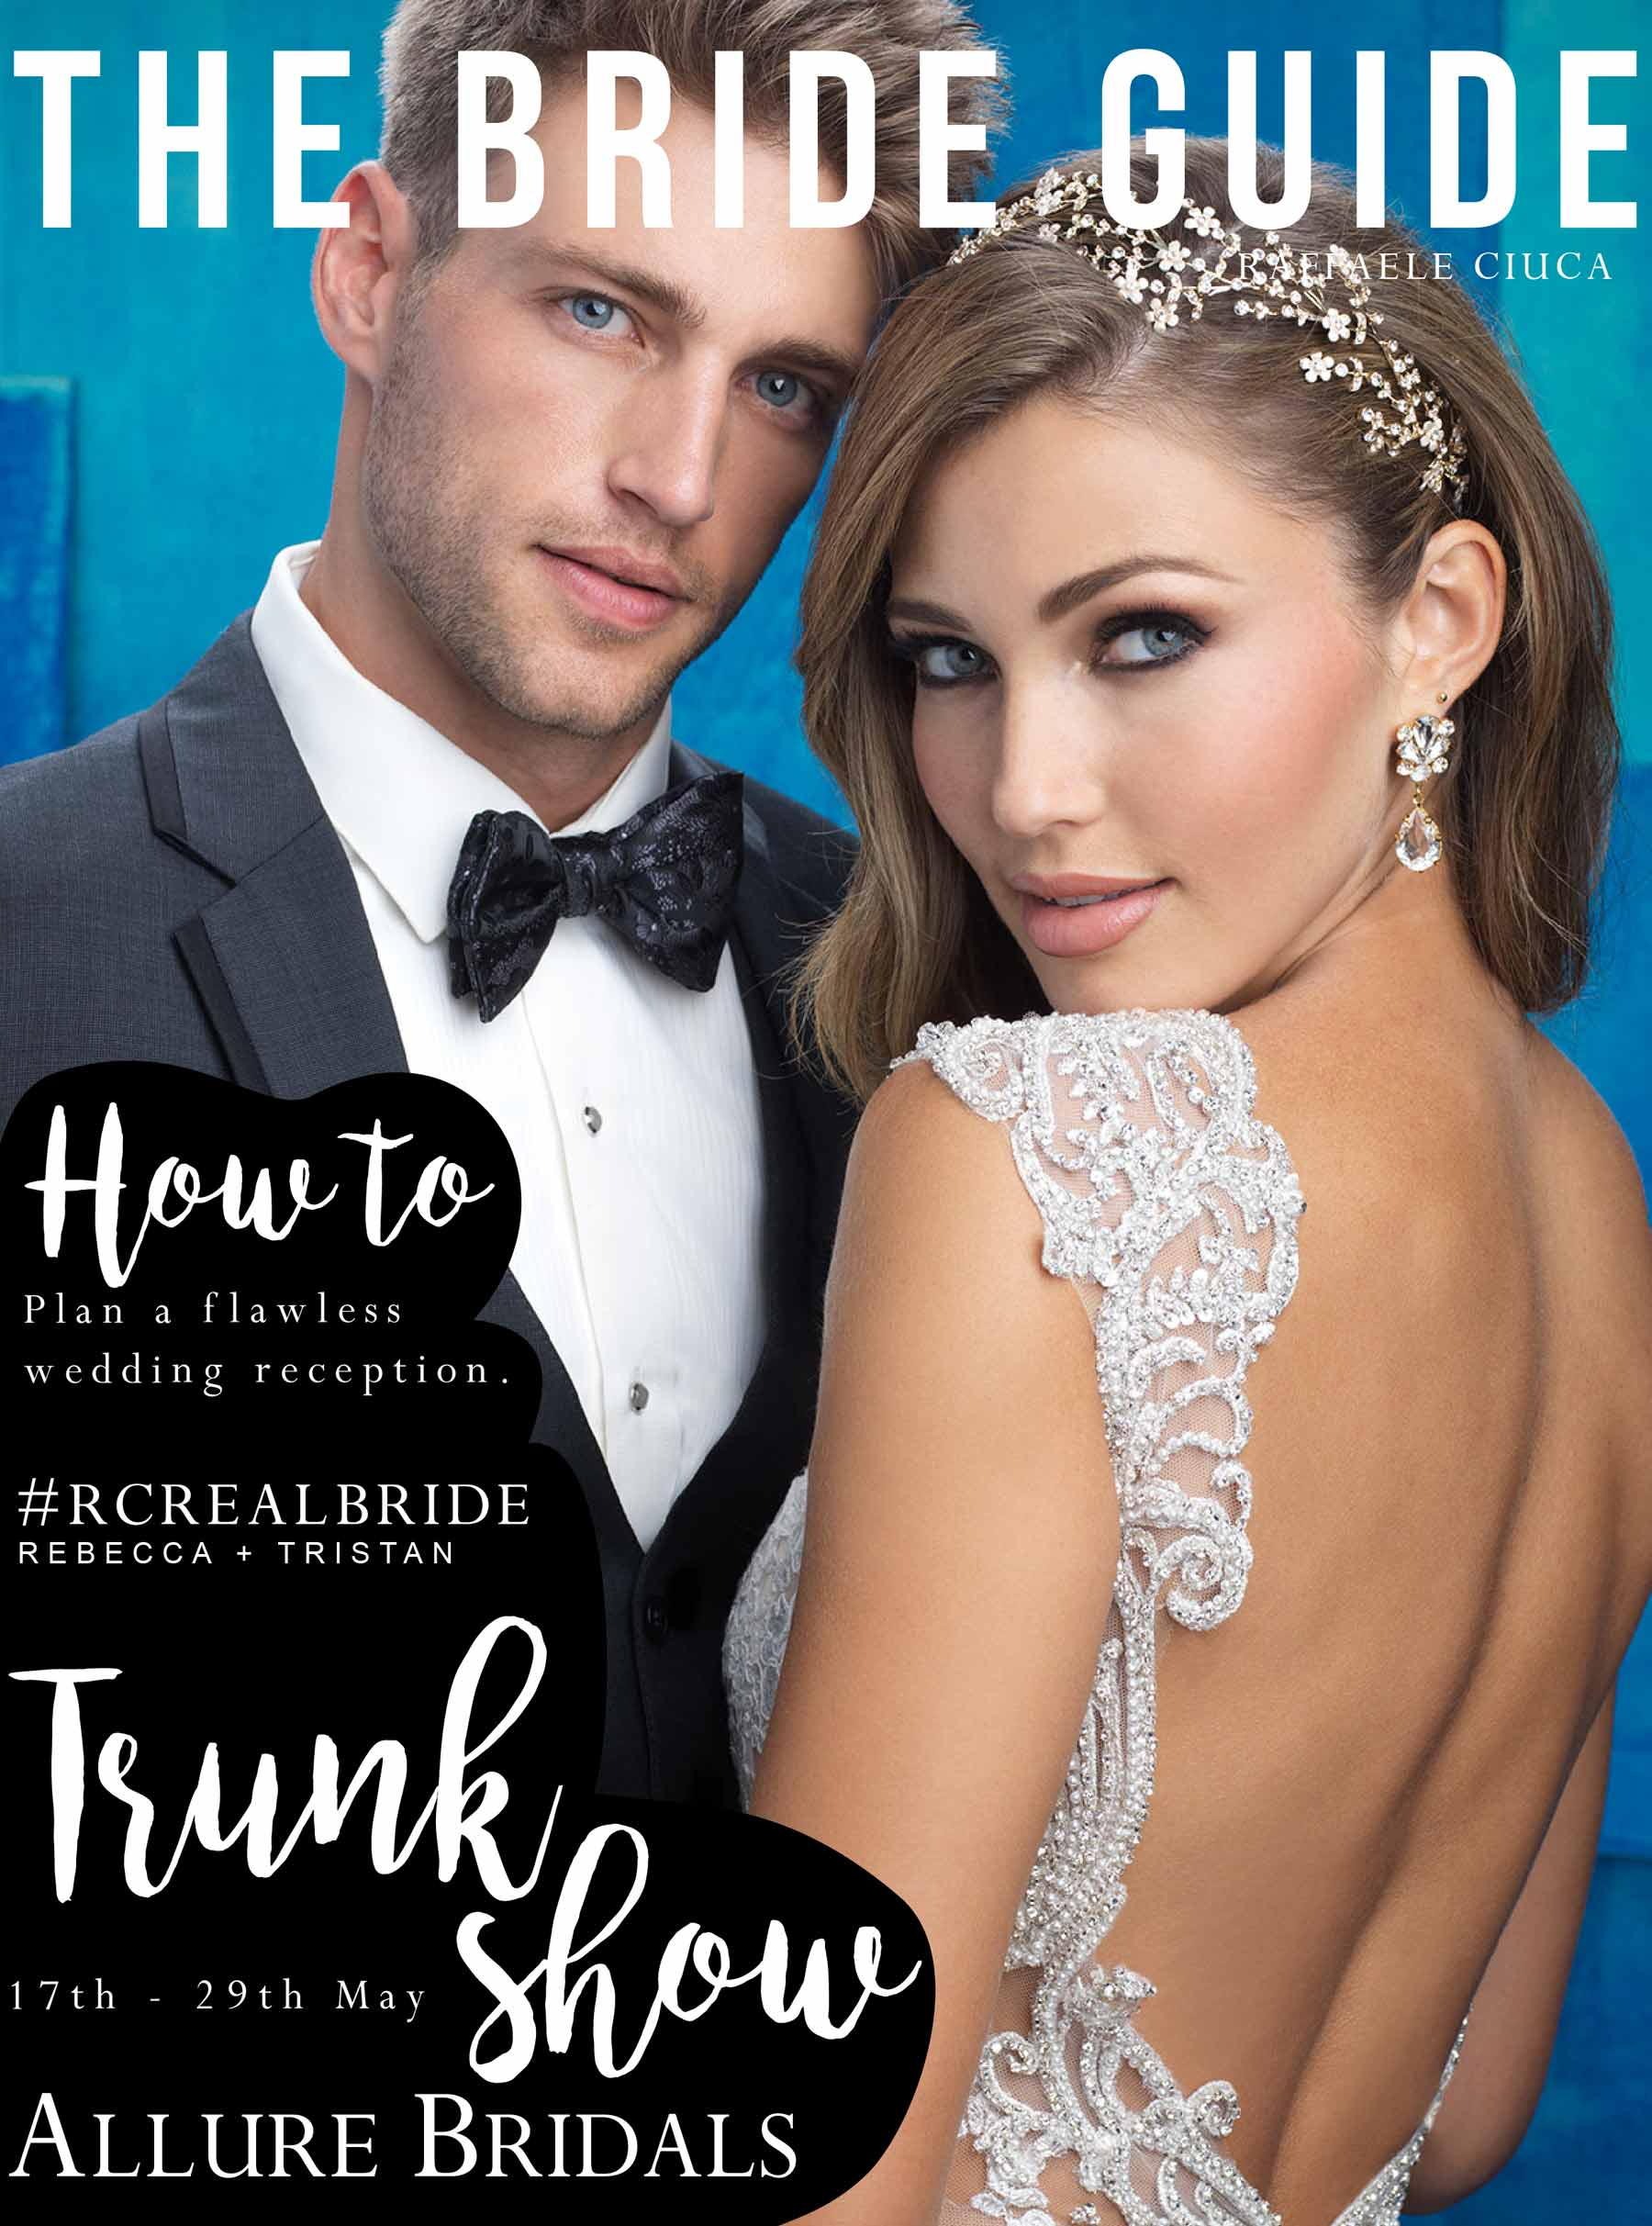 Bride Guide front cover